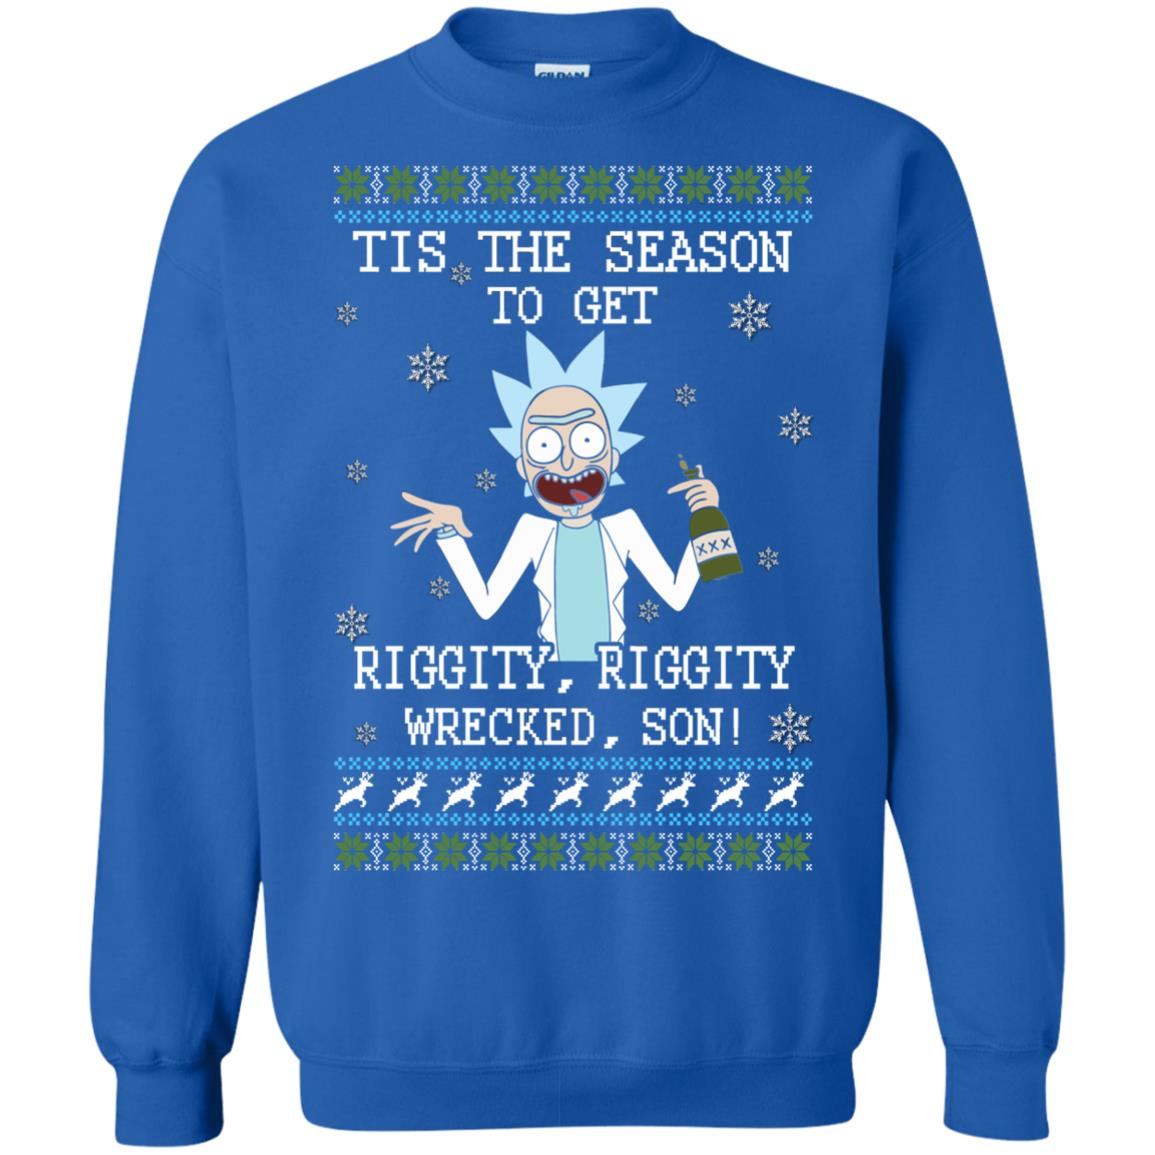 image 582px Rick and Morty Tis The Season To Get Riggity Wrecked Son Christmas Sweater